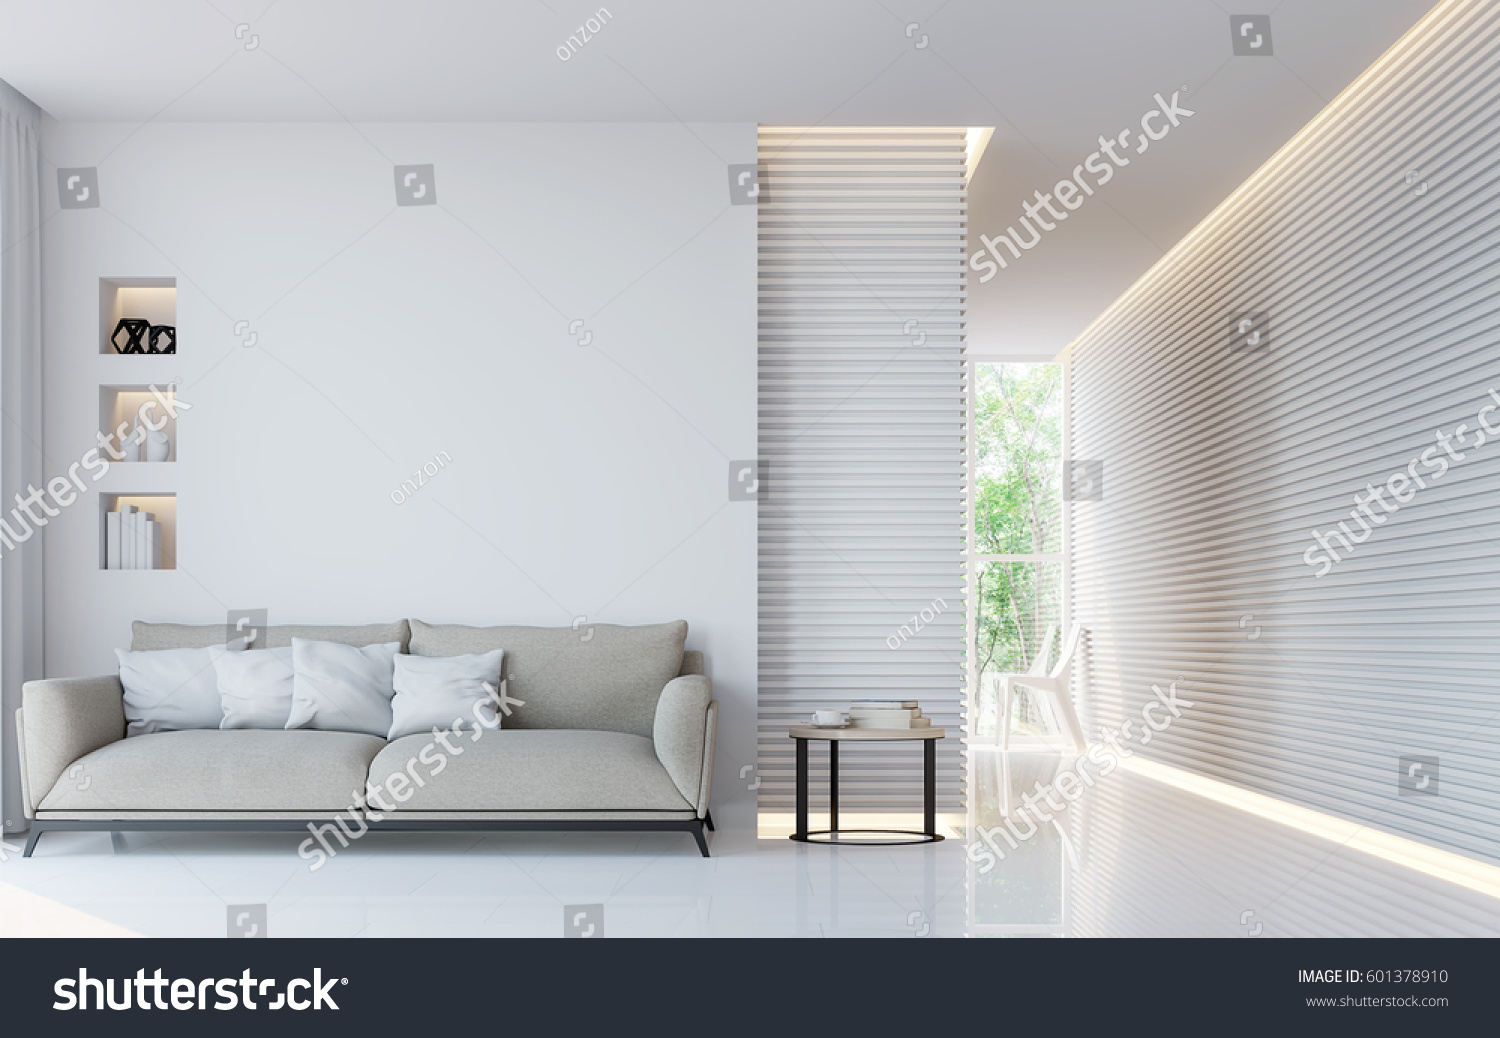 Modern White Living Room Interior 3d Rendering Image.A Blank Wall With Pure  White. Part 95